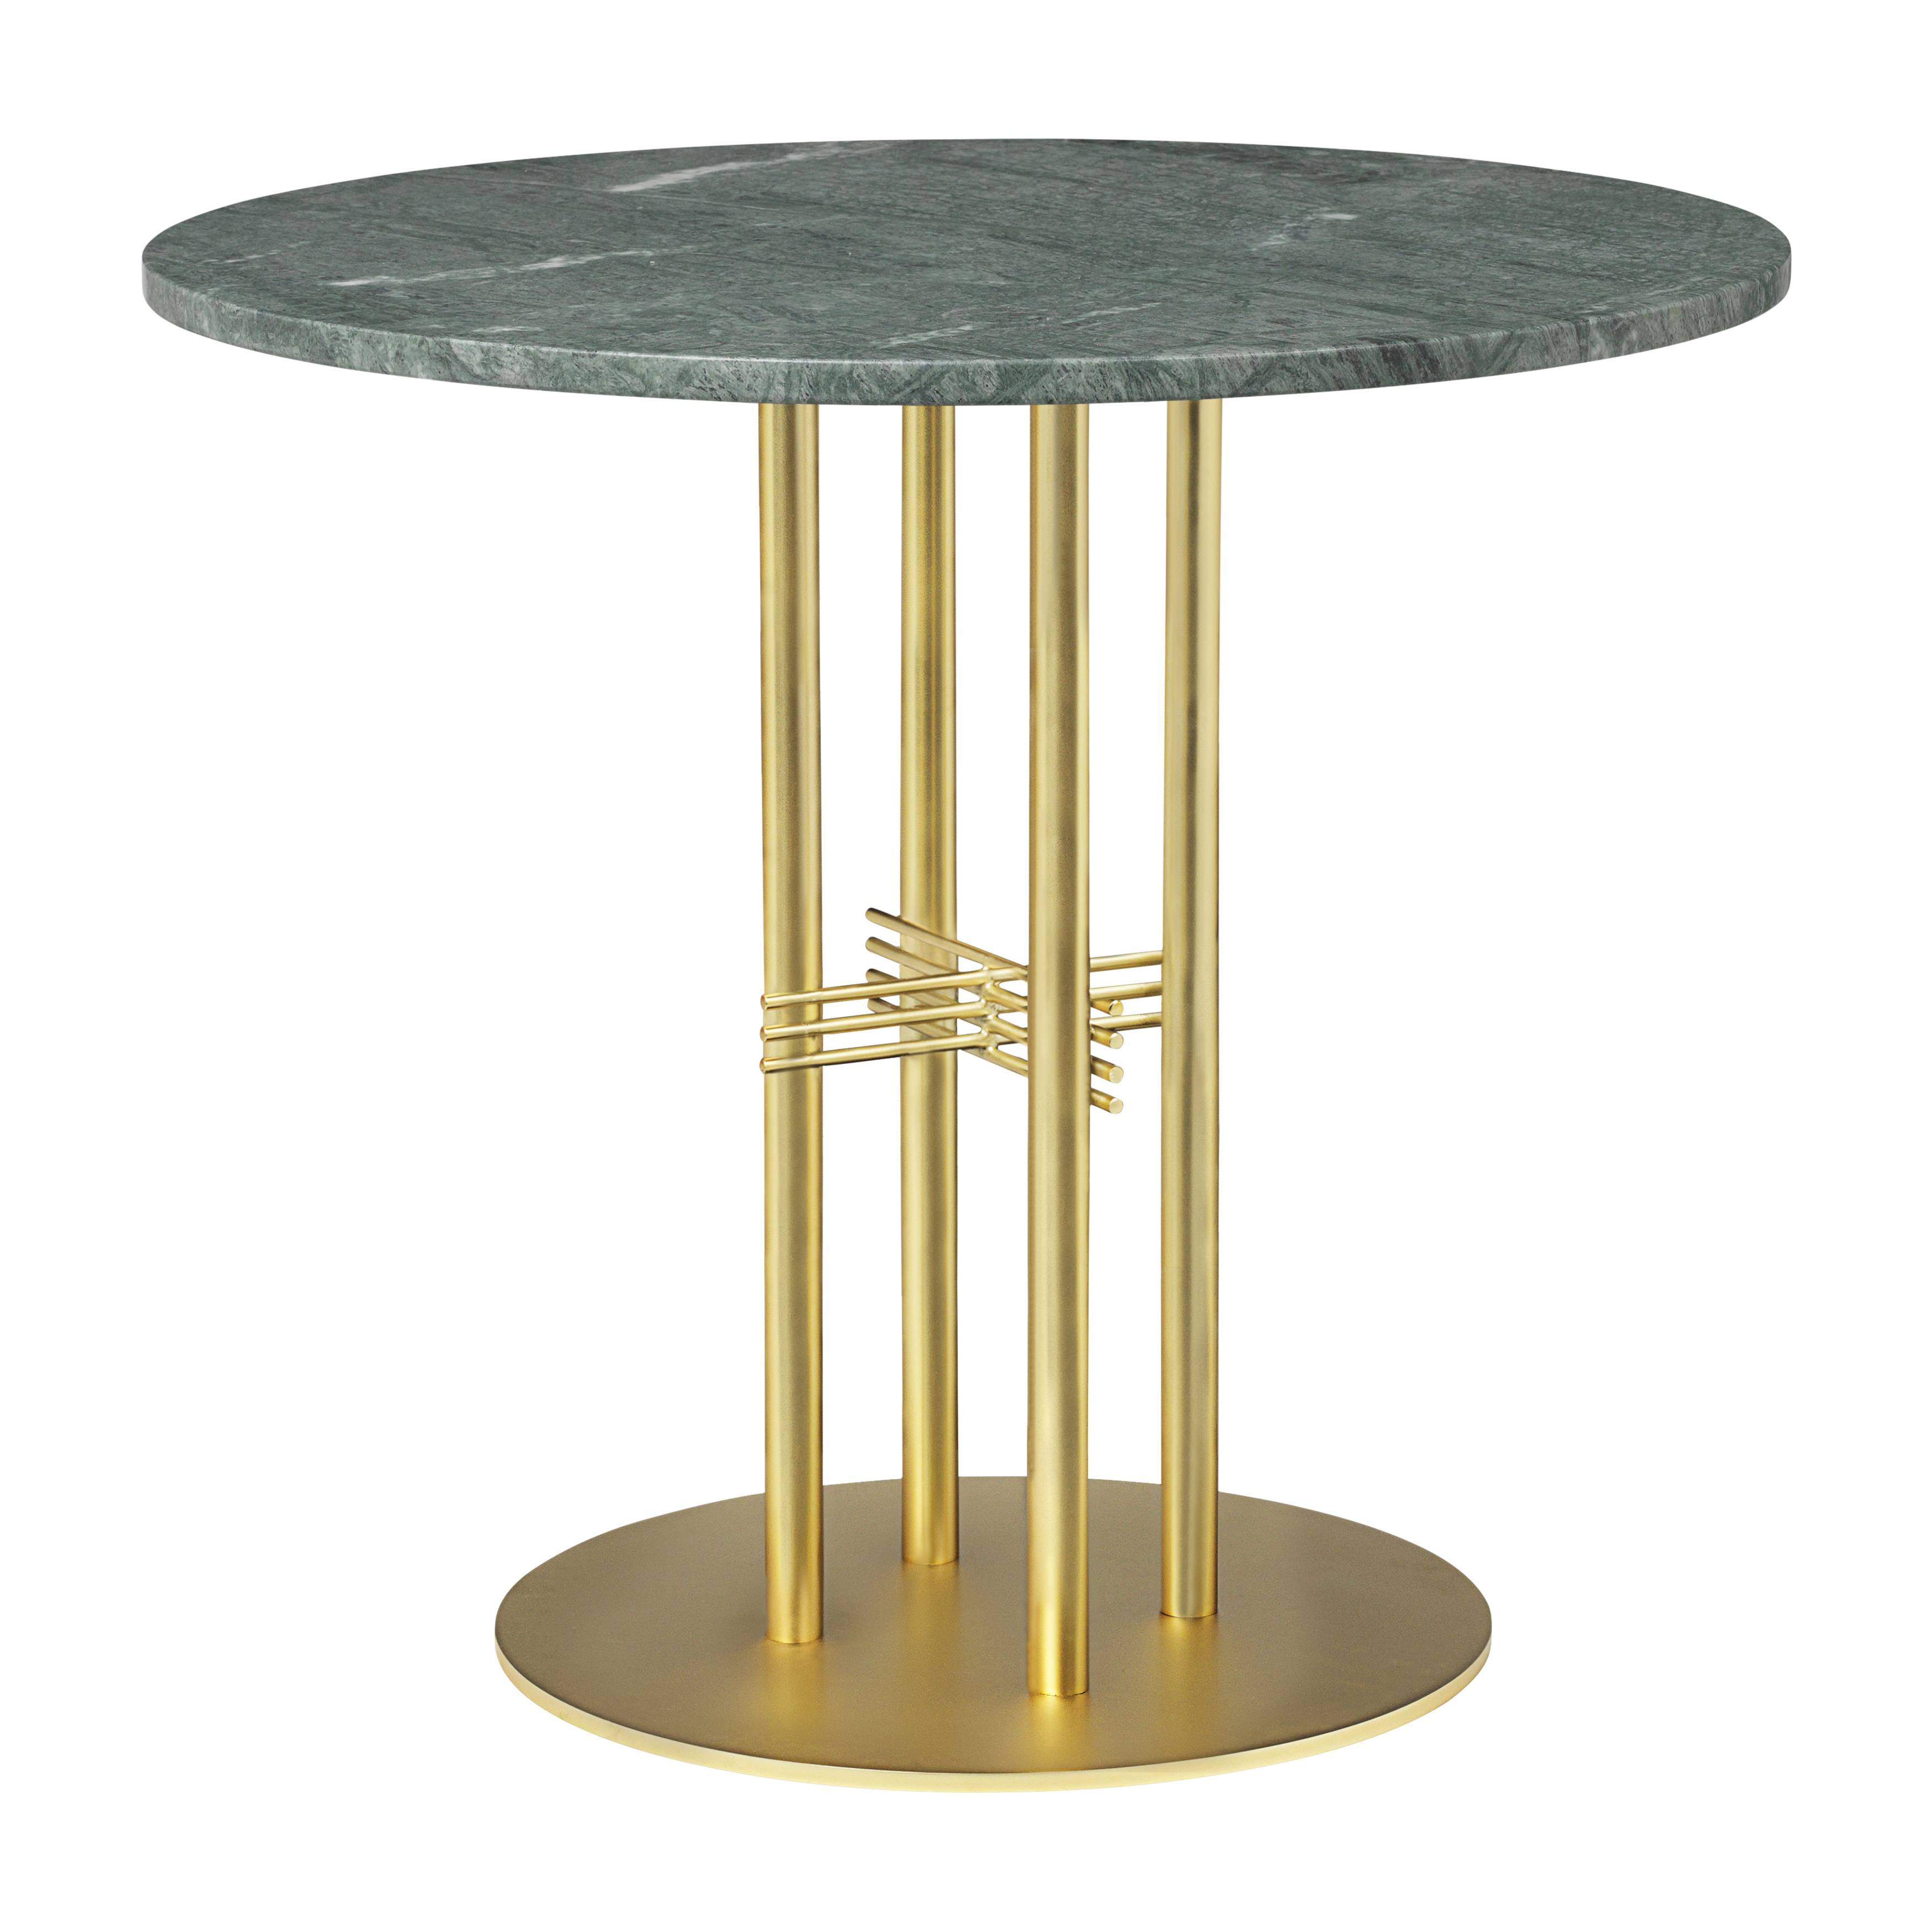 TS Column Dining Table: Small + Brass Base + Green Gautemala Marble